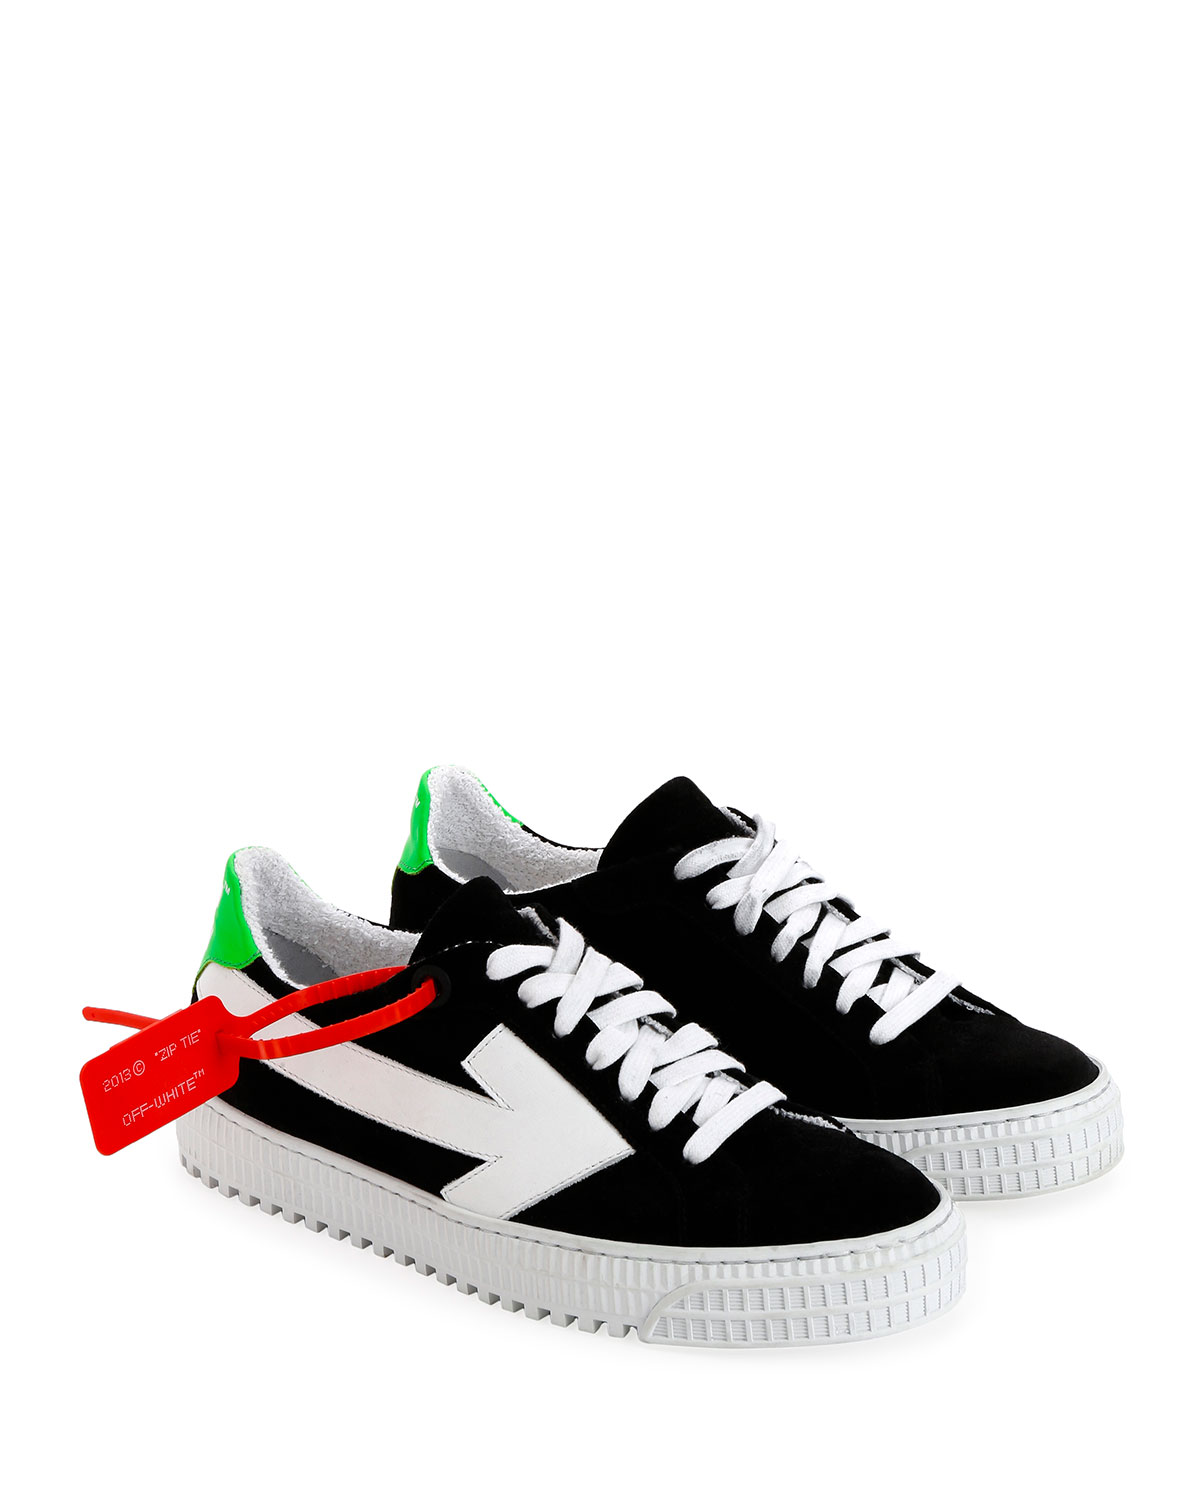 743705b8a71 Off-White Arrow Platform Suede Sneakers